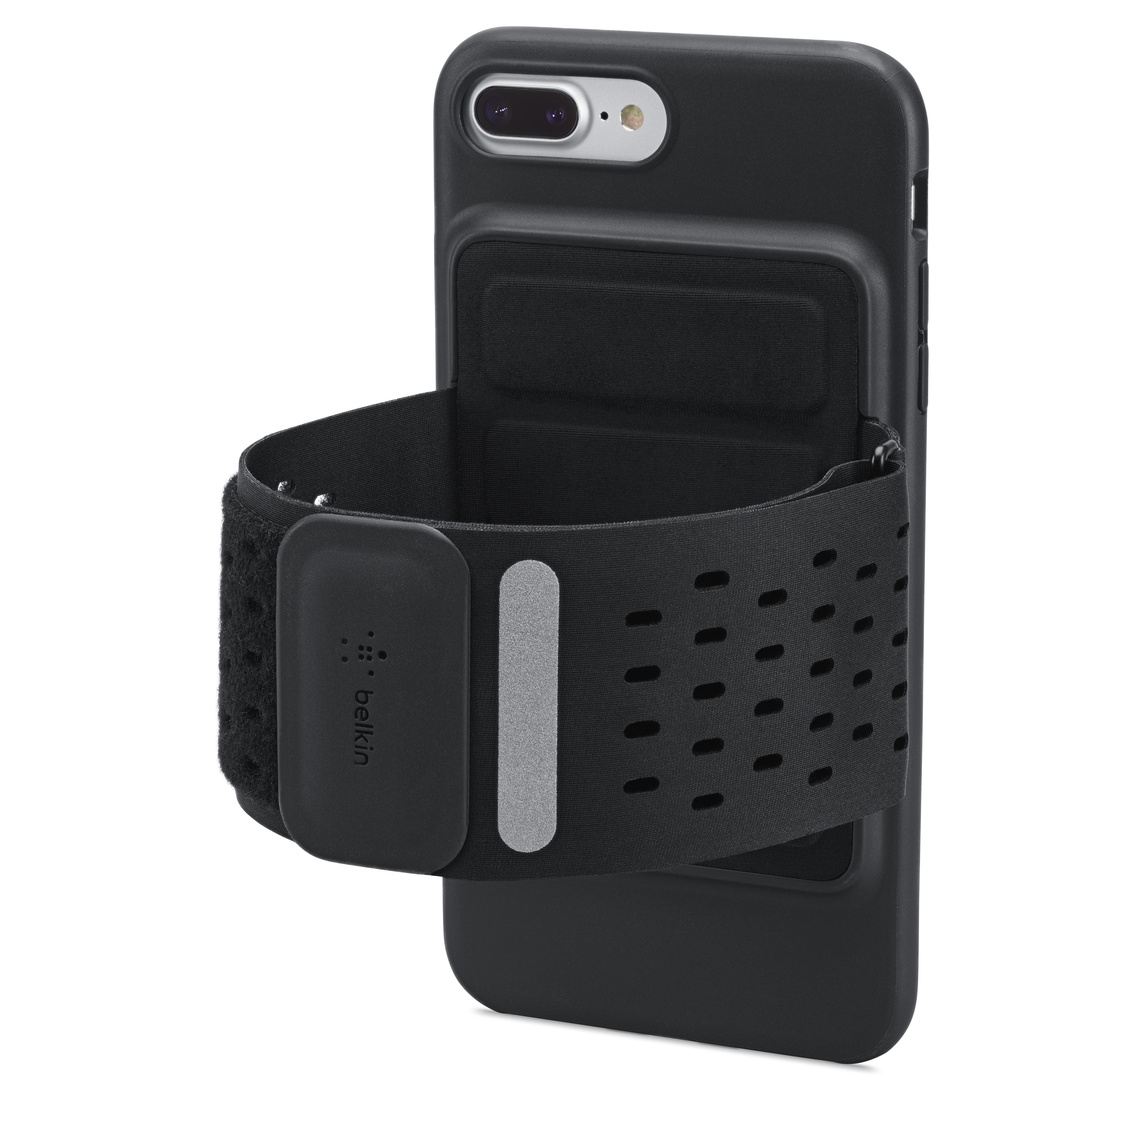 finest selection 0489a 2b575 Belkin Fitness Armband for iPhone 8 Plus/7 Plus